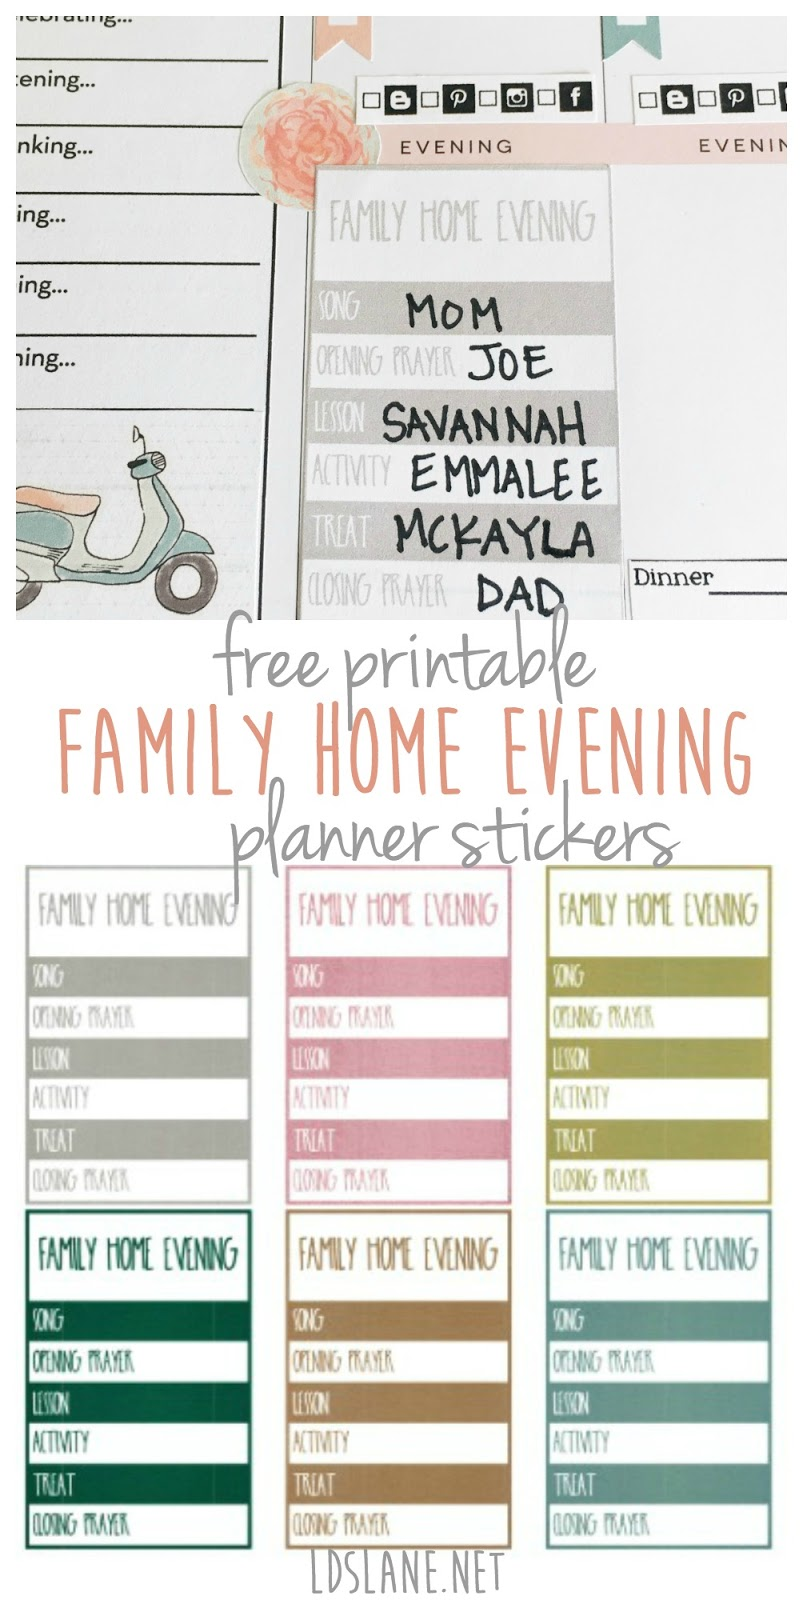 Free Printable Family Home Evening planner stickers at LDSLane.net